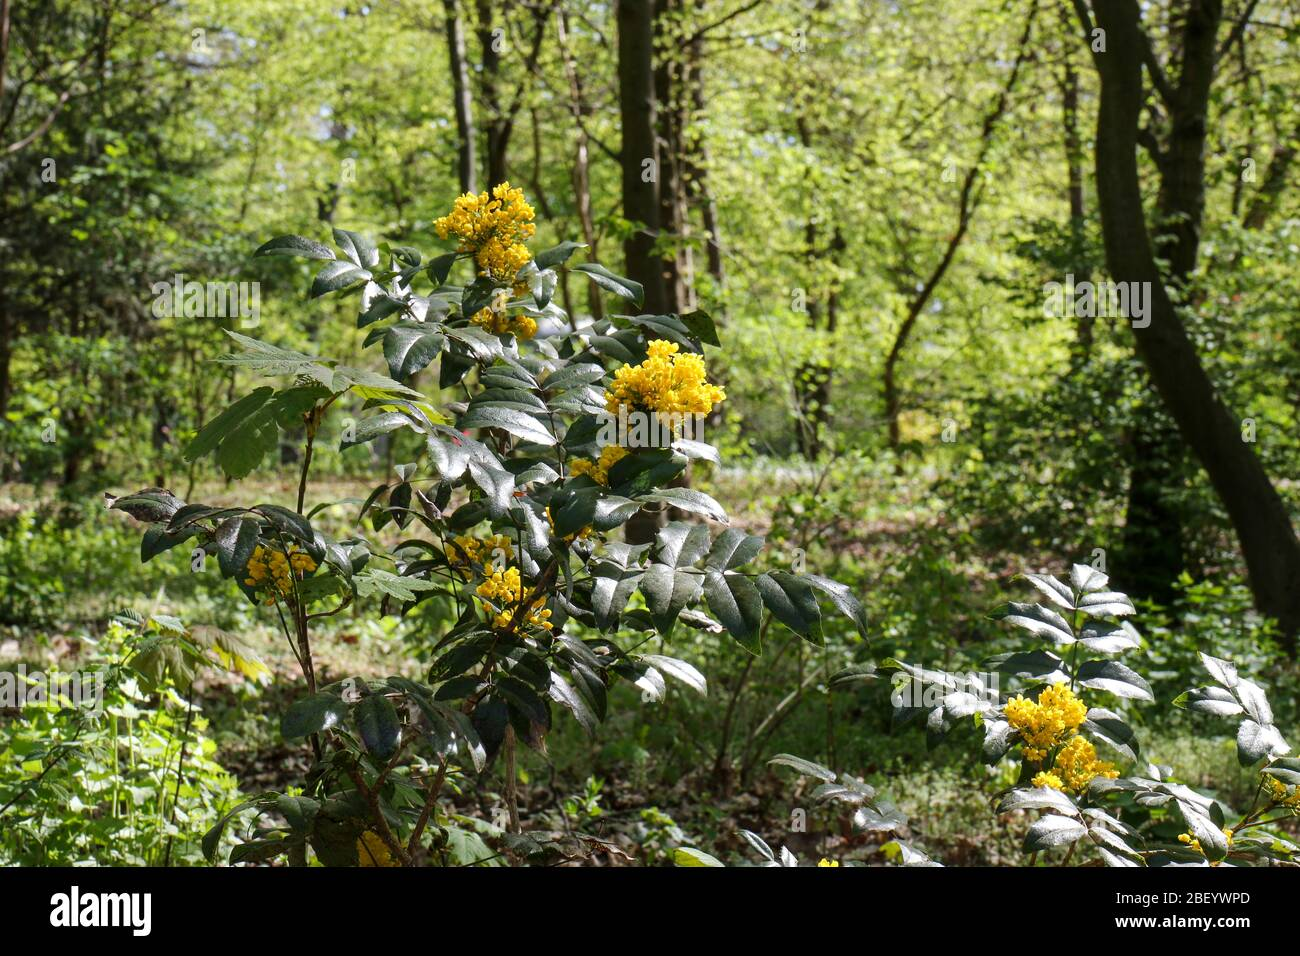 Yellow blooming Mahonia aquifolium, the Oregon grape, on a sunny spring day in a park in Berlin. It's an evergreen shrub, in the family Berberidaceae. Stock Photo